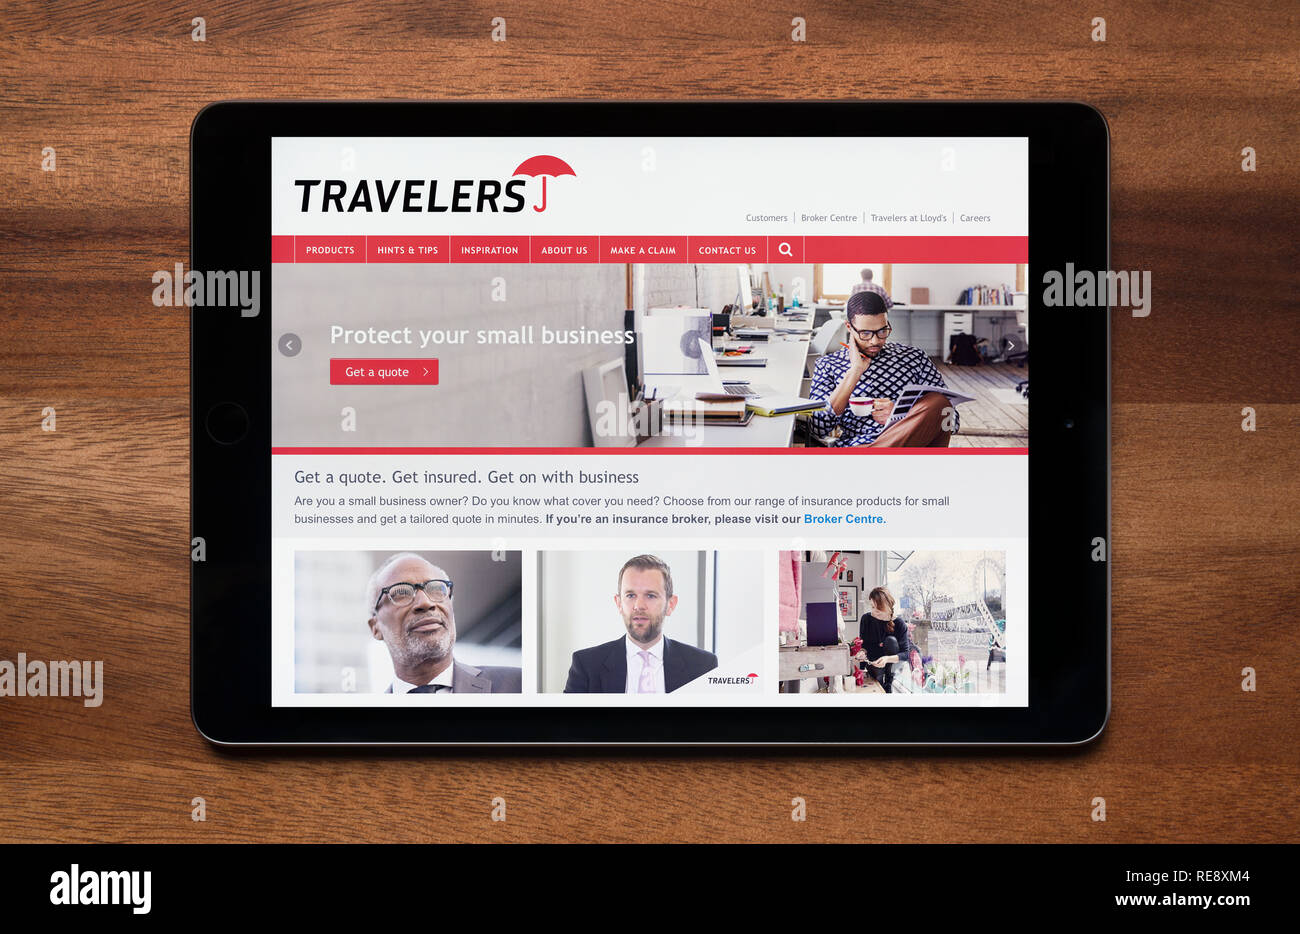 The website of Travelers Business Insurance is seen on an iPad tablet, which is resting on a wooden table (Editorial use only). - Stock Image